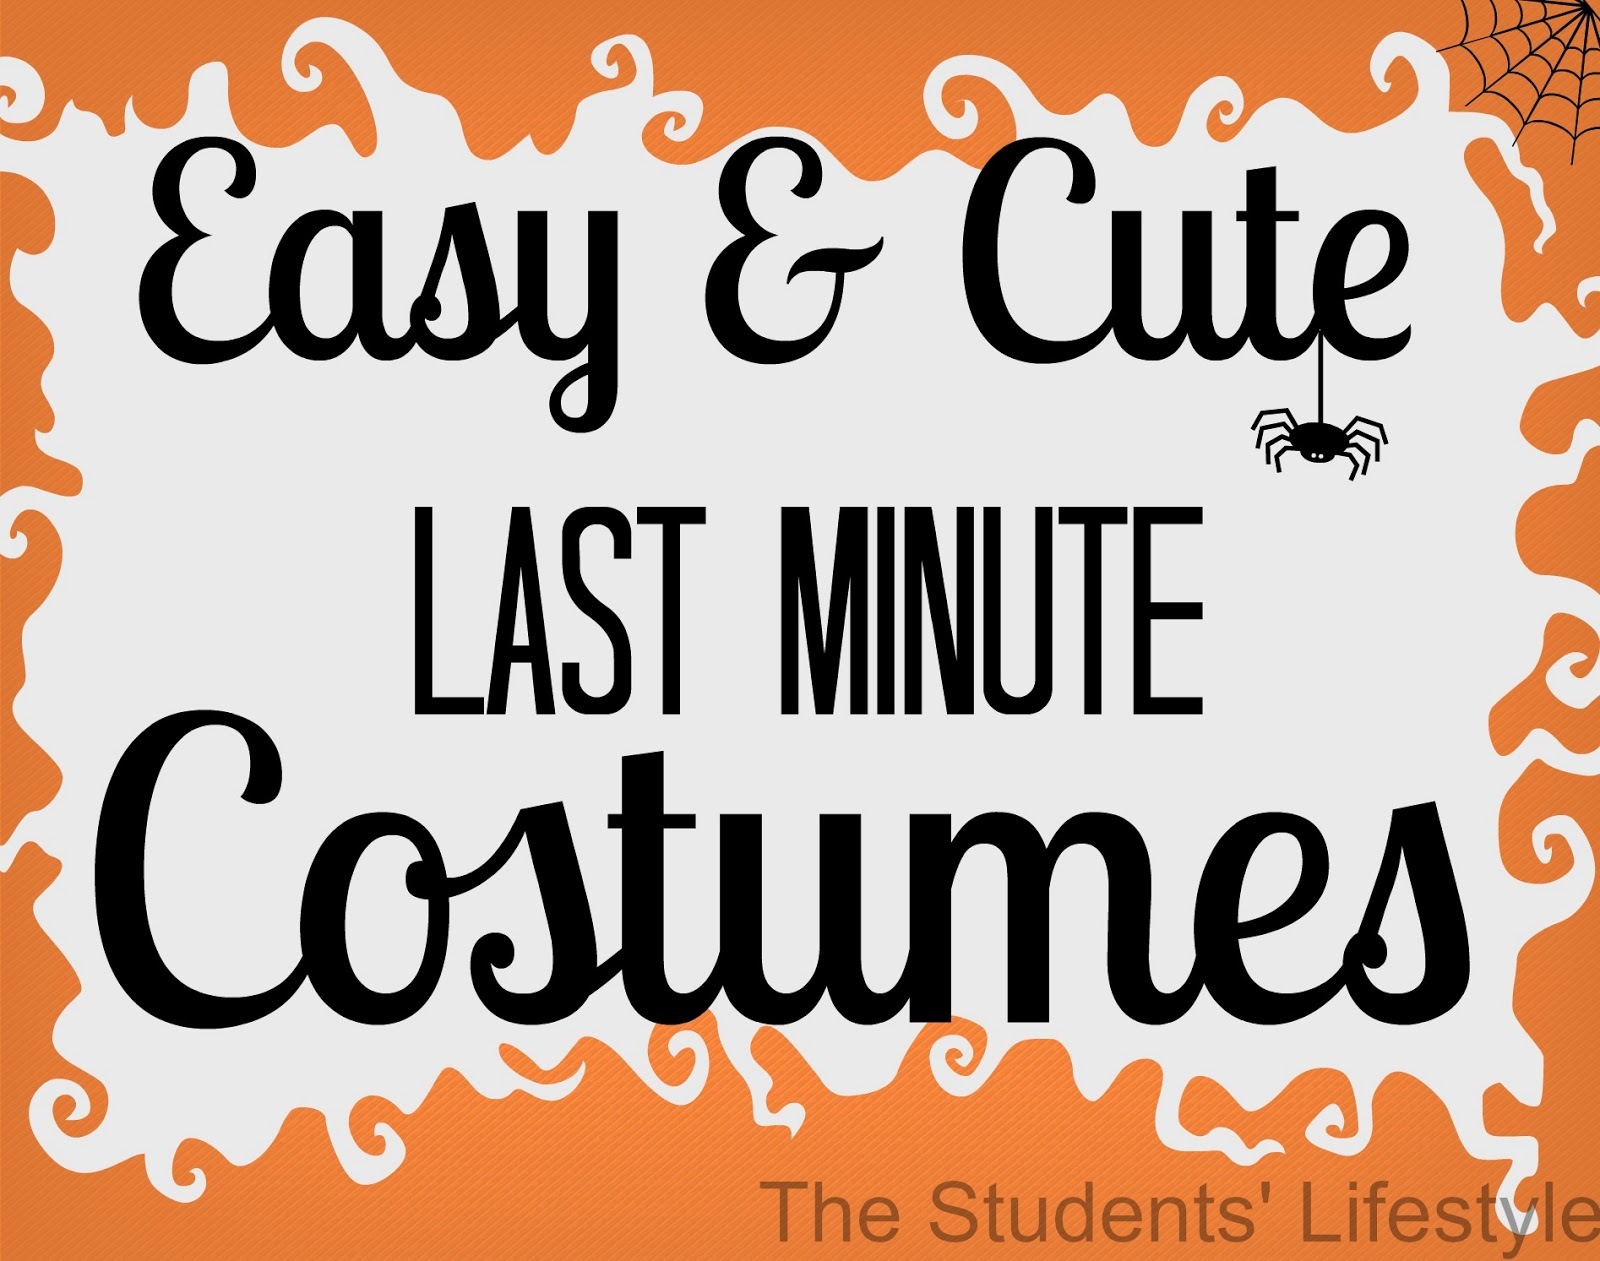 Easy%2Band%2BCute%2BLast%2BMinute%2BCostumes easy and cute last minute costumes the students' lifestyle,Last Minute Invite